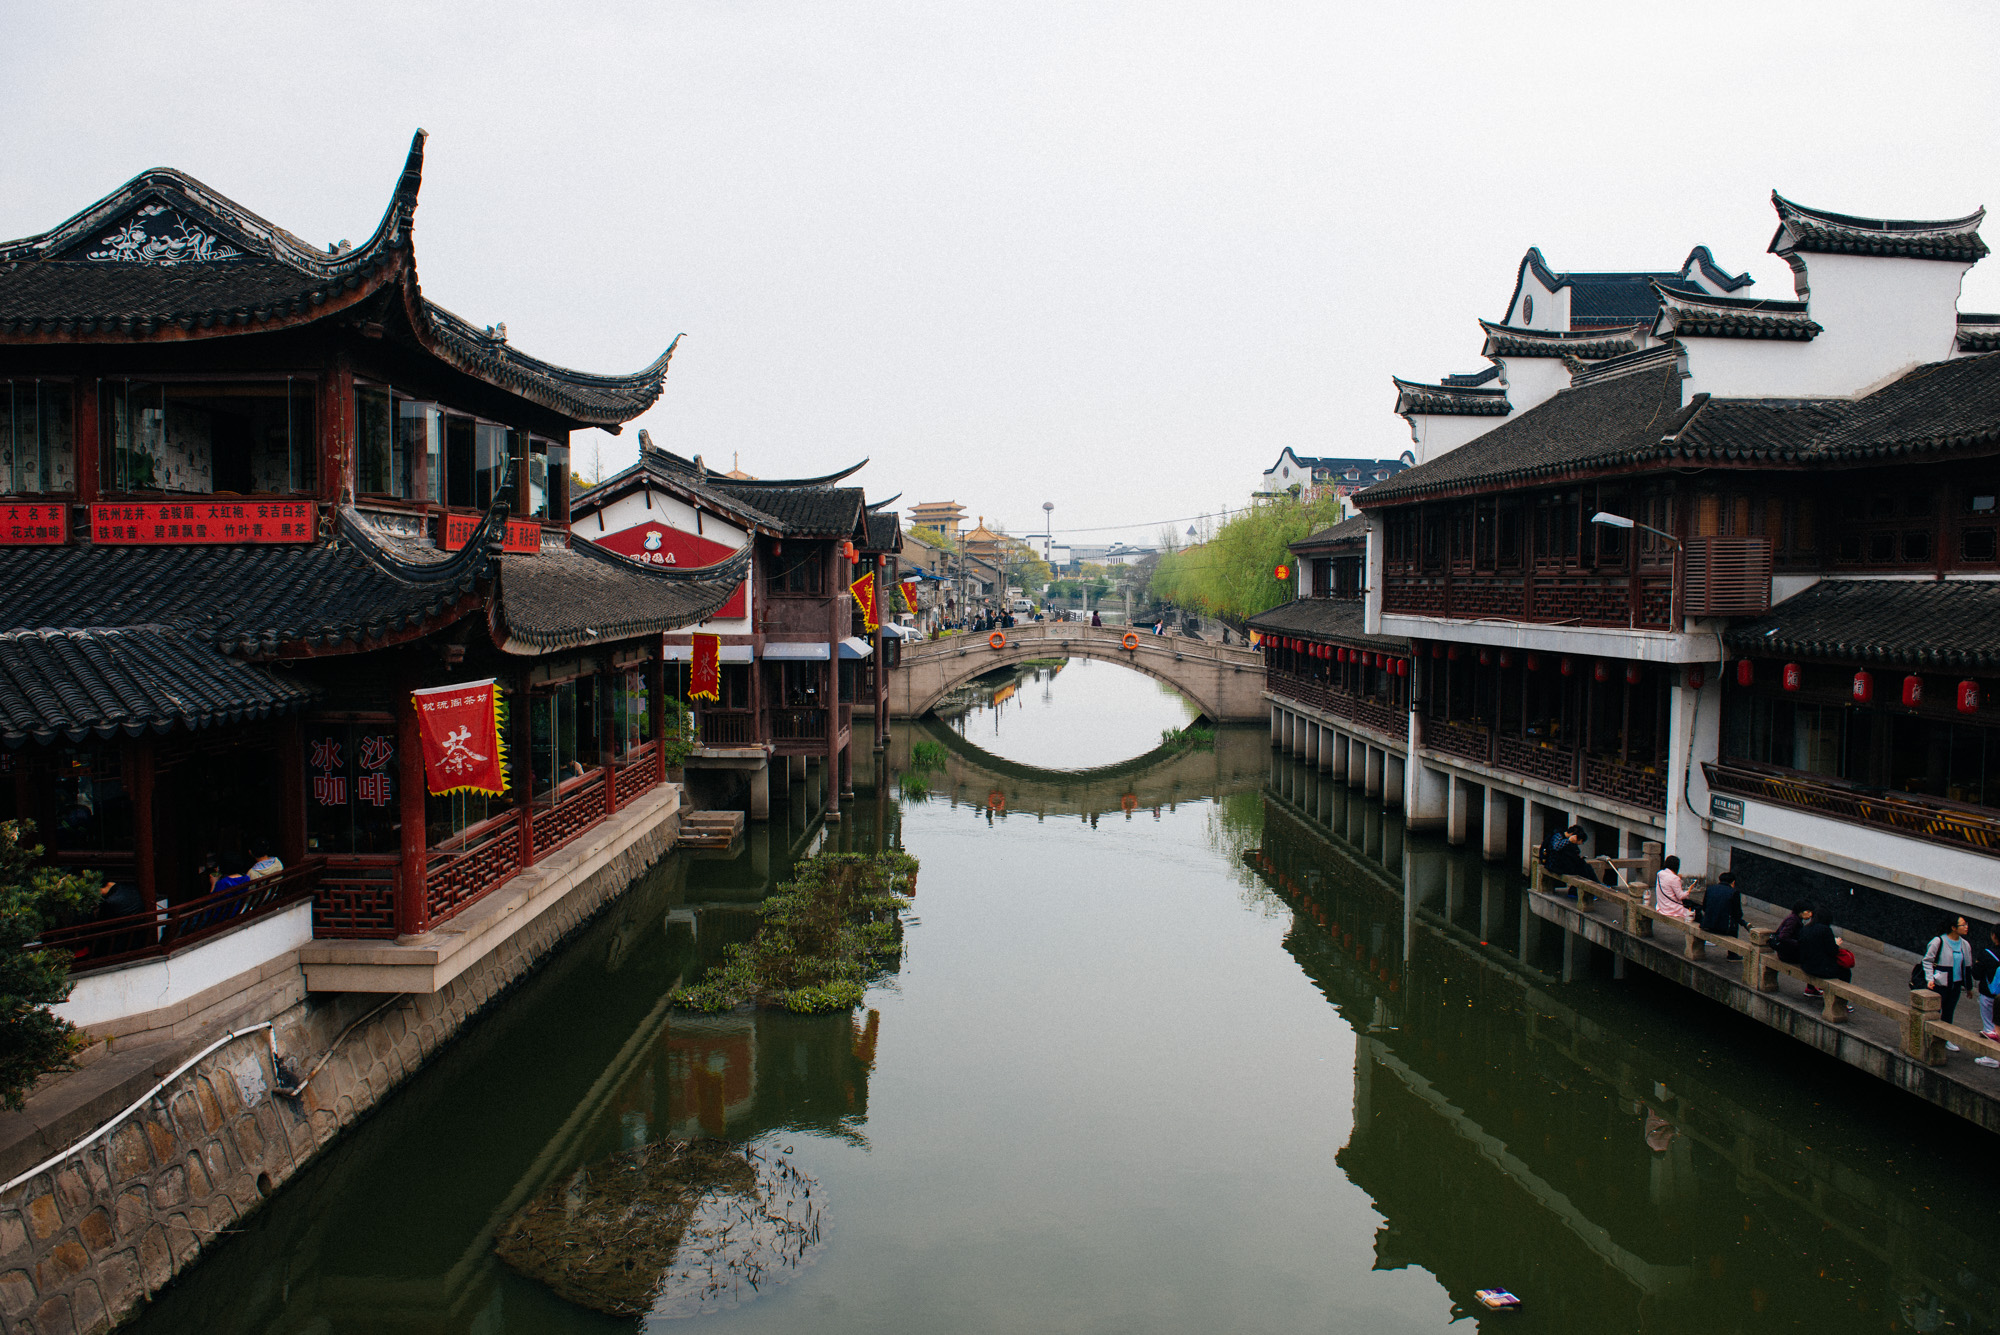 The Puhui river cuts the small town in half and is a big part of the attraction. Restaurants and teahouses are along the margins.